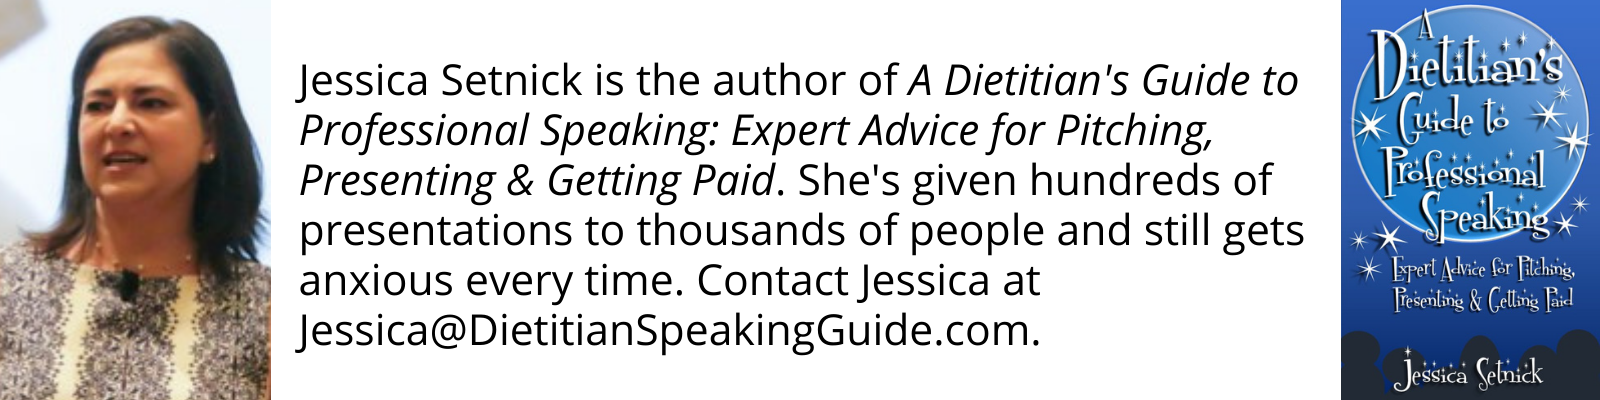 Jessica Setnick is the author of A Dietitian's Guide to Professional Speaking: Expert Advice for Pitching, Presenting & Getting Paid. She's presented hundreds of times to thousands of people and still gets nervous every time.